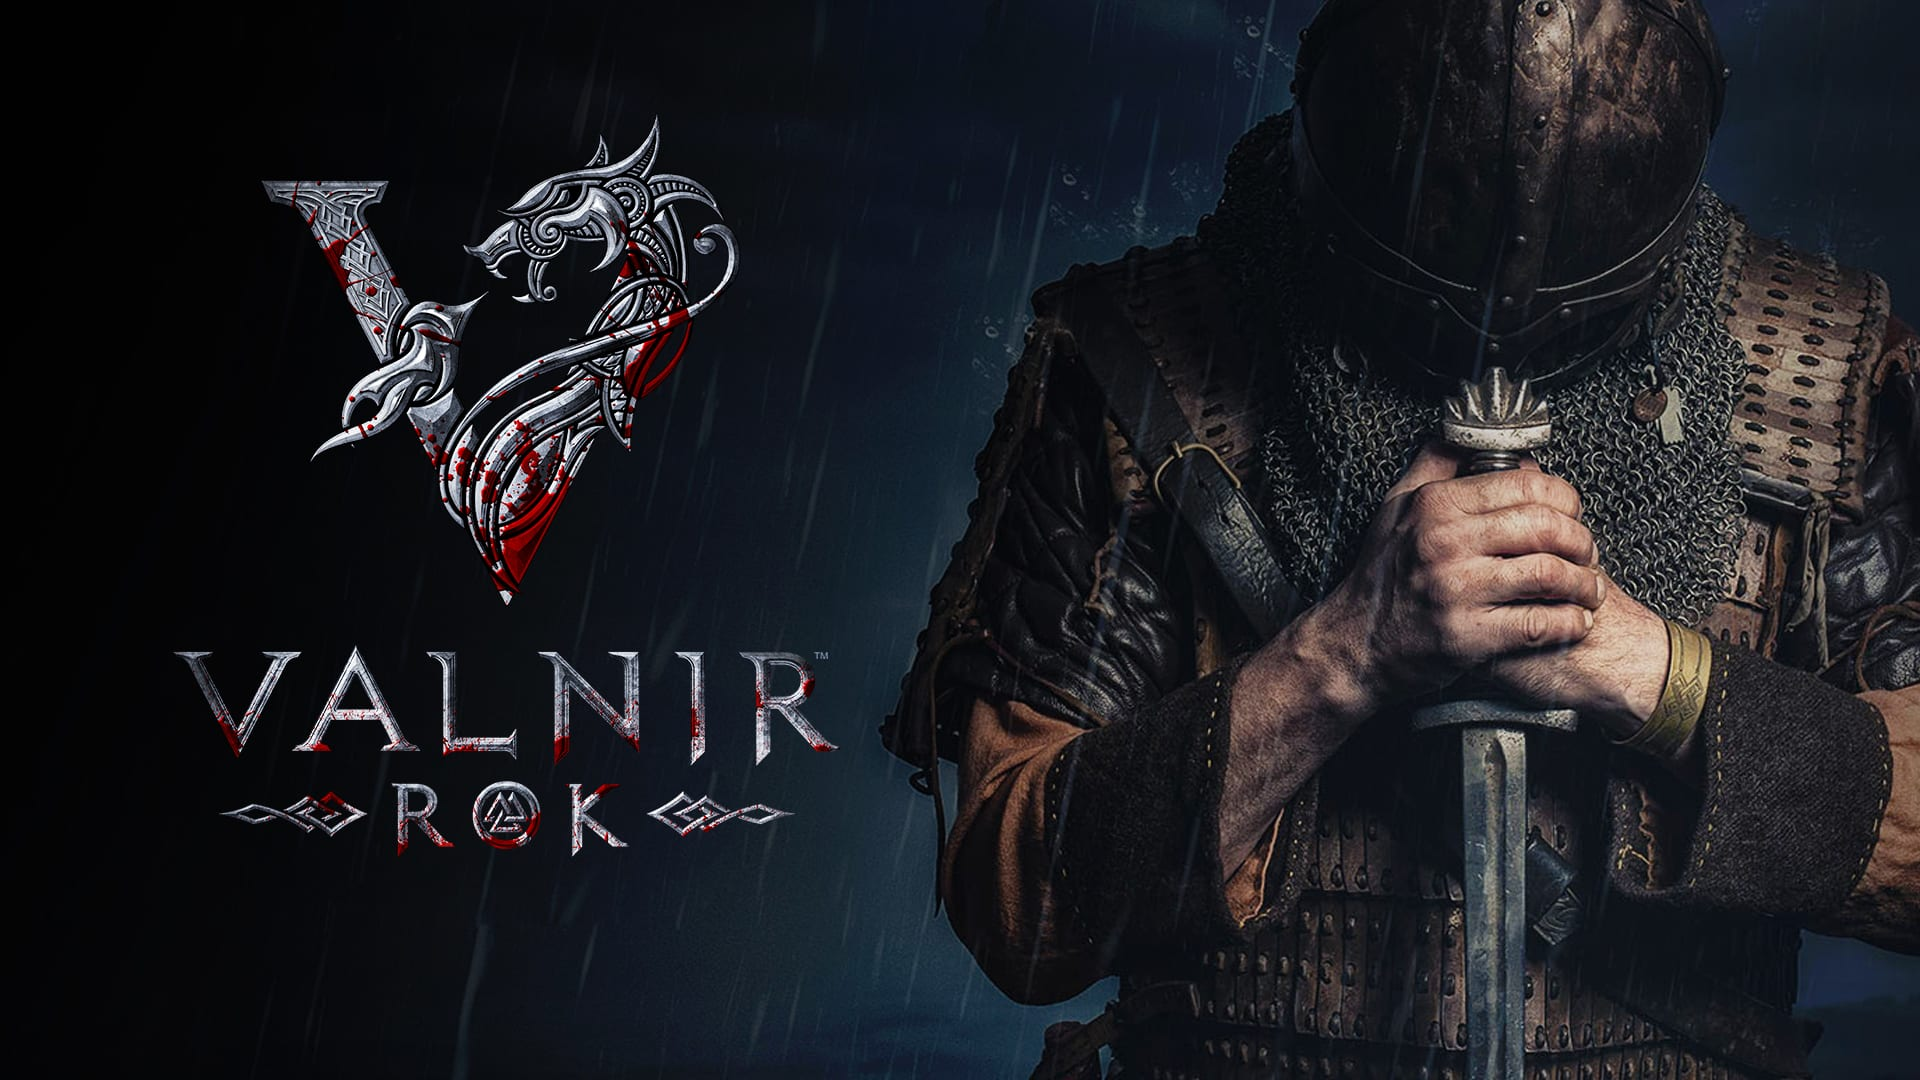 A New God Is Rising In Valnir Rok – More Major Updates And New Areas Just Arrived